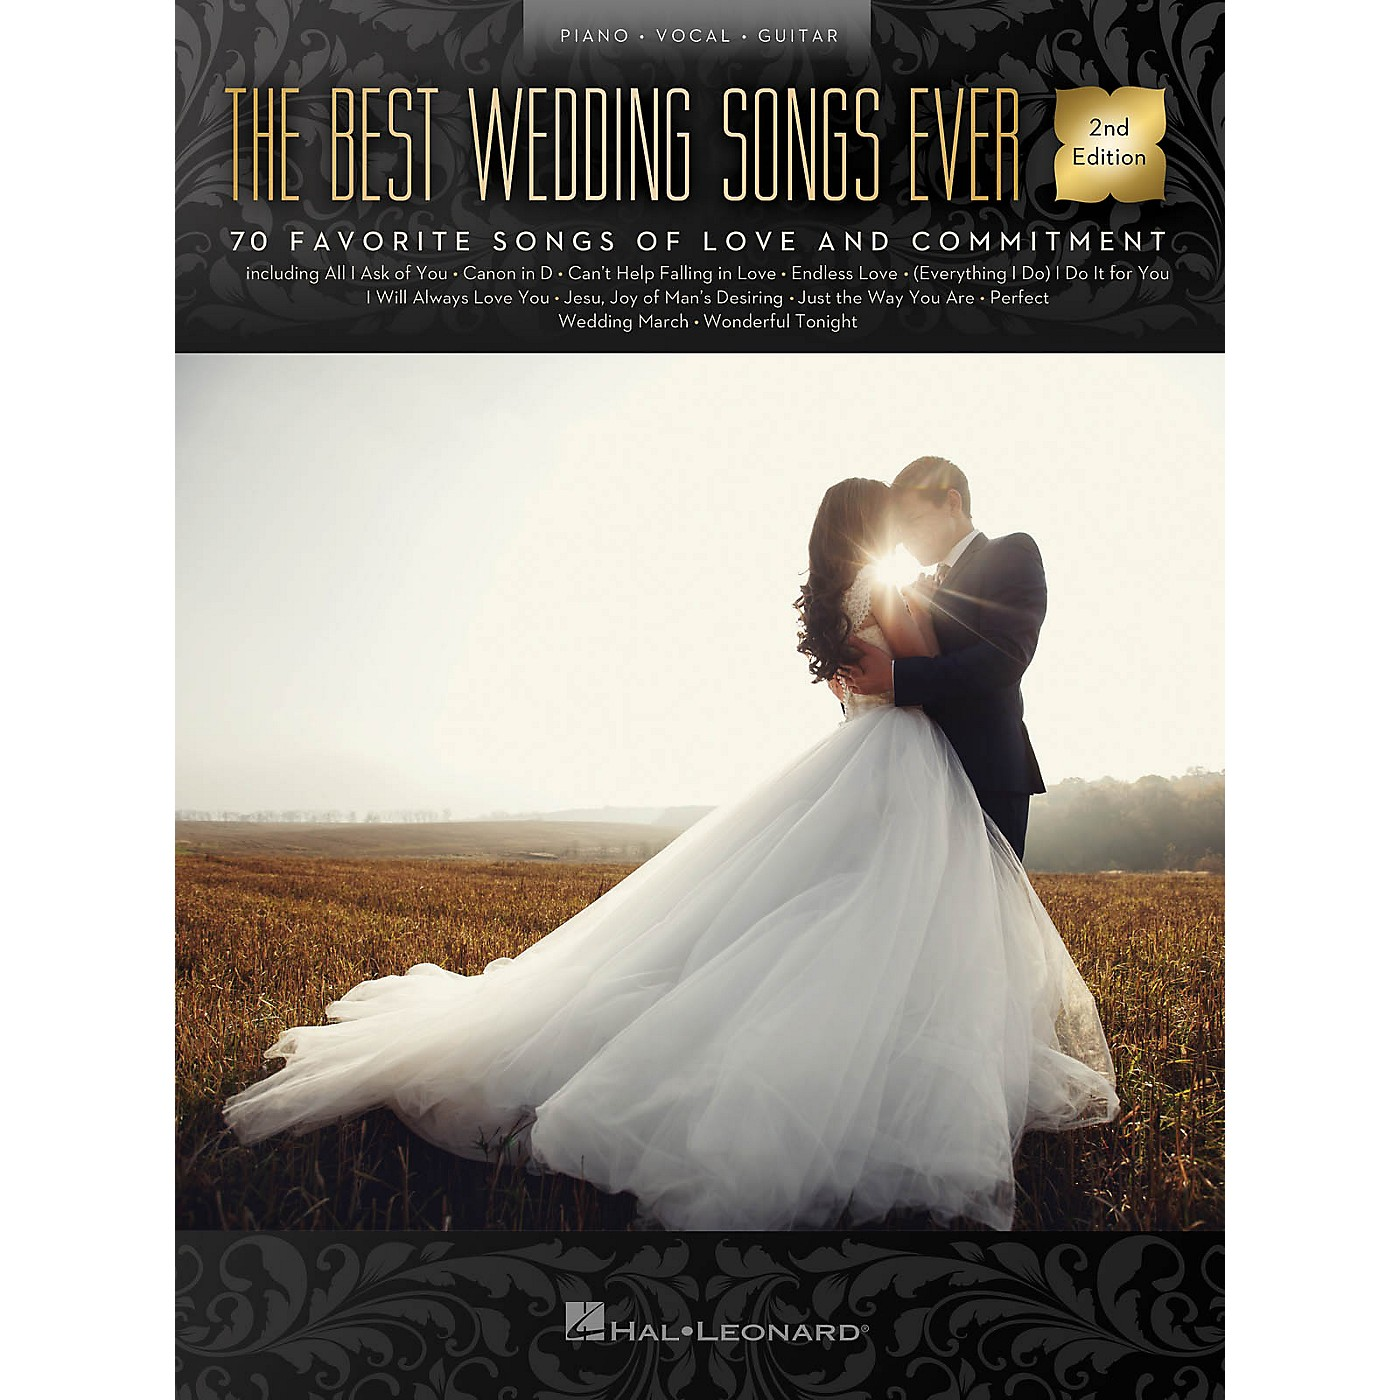 Hal Leonard The Best Wedding Songs Ever - 2nd Edition Piano/Vocal/Guitar Songbook thumbnail